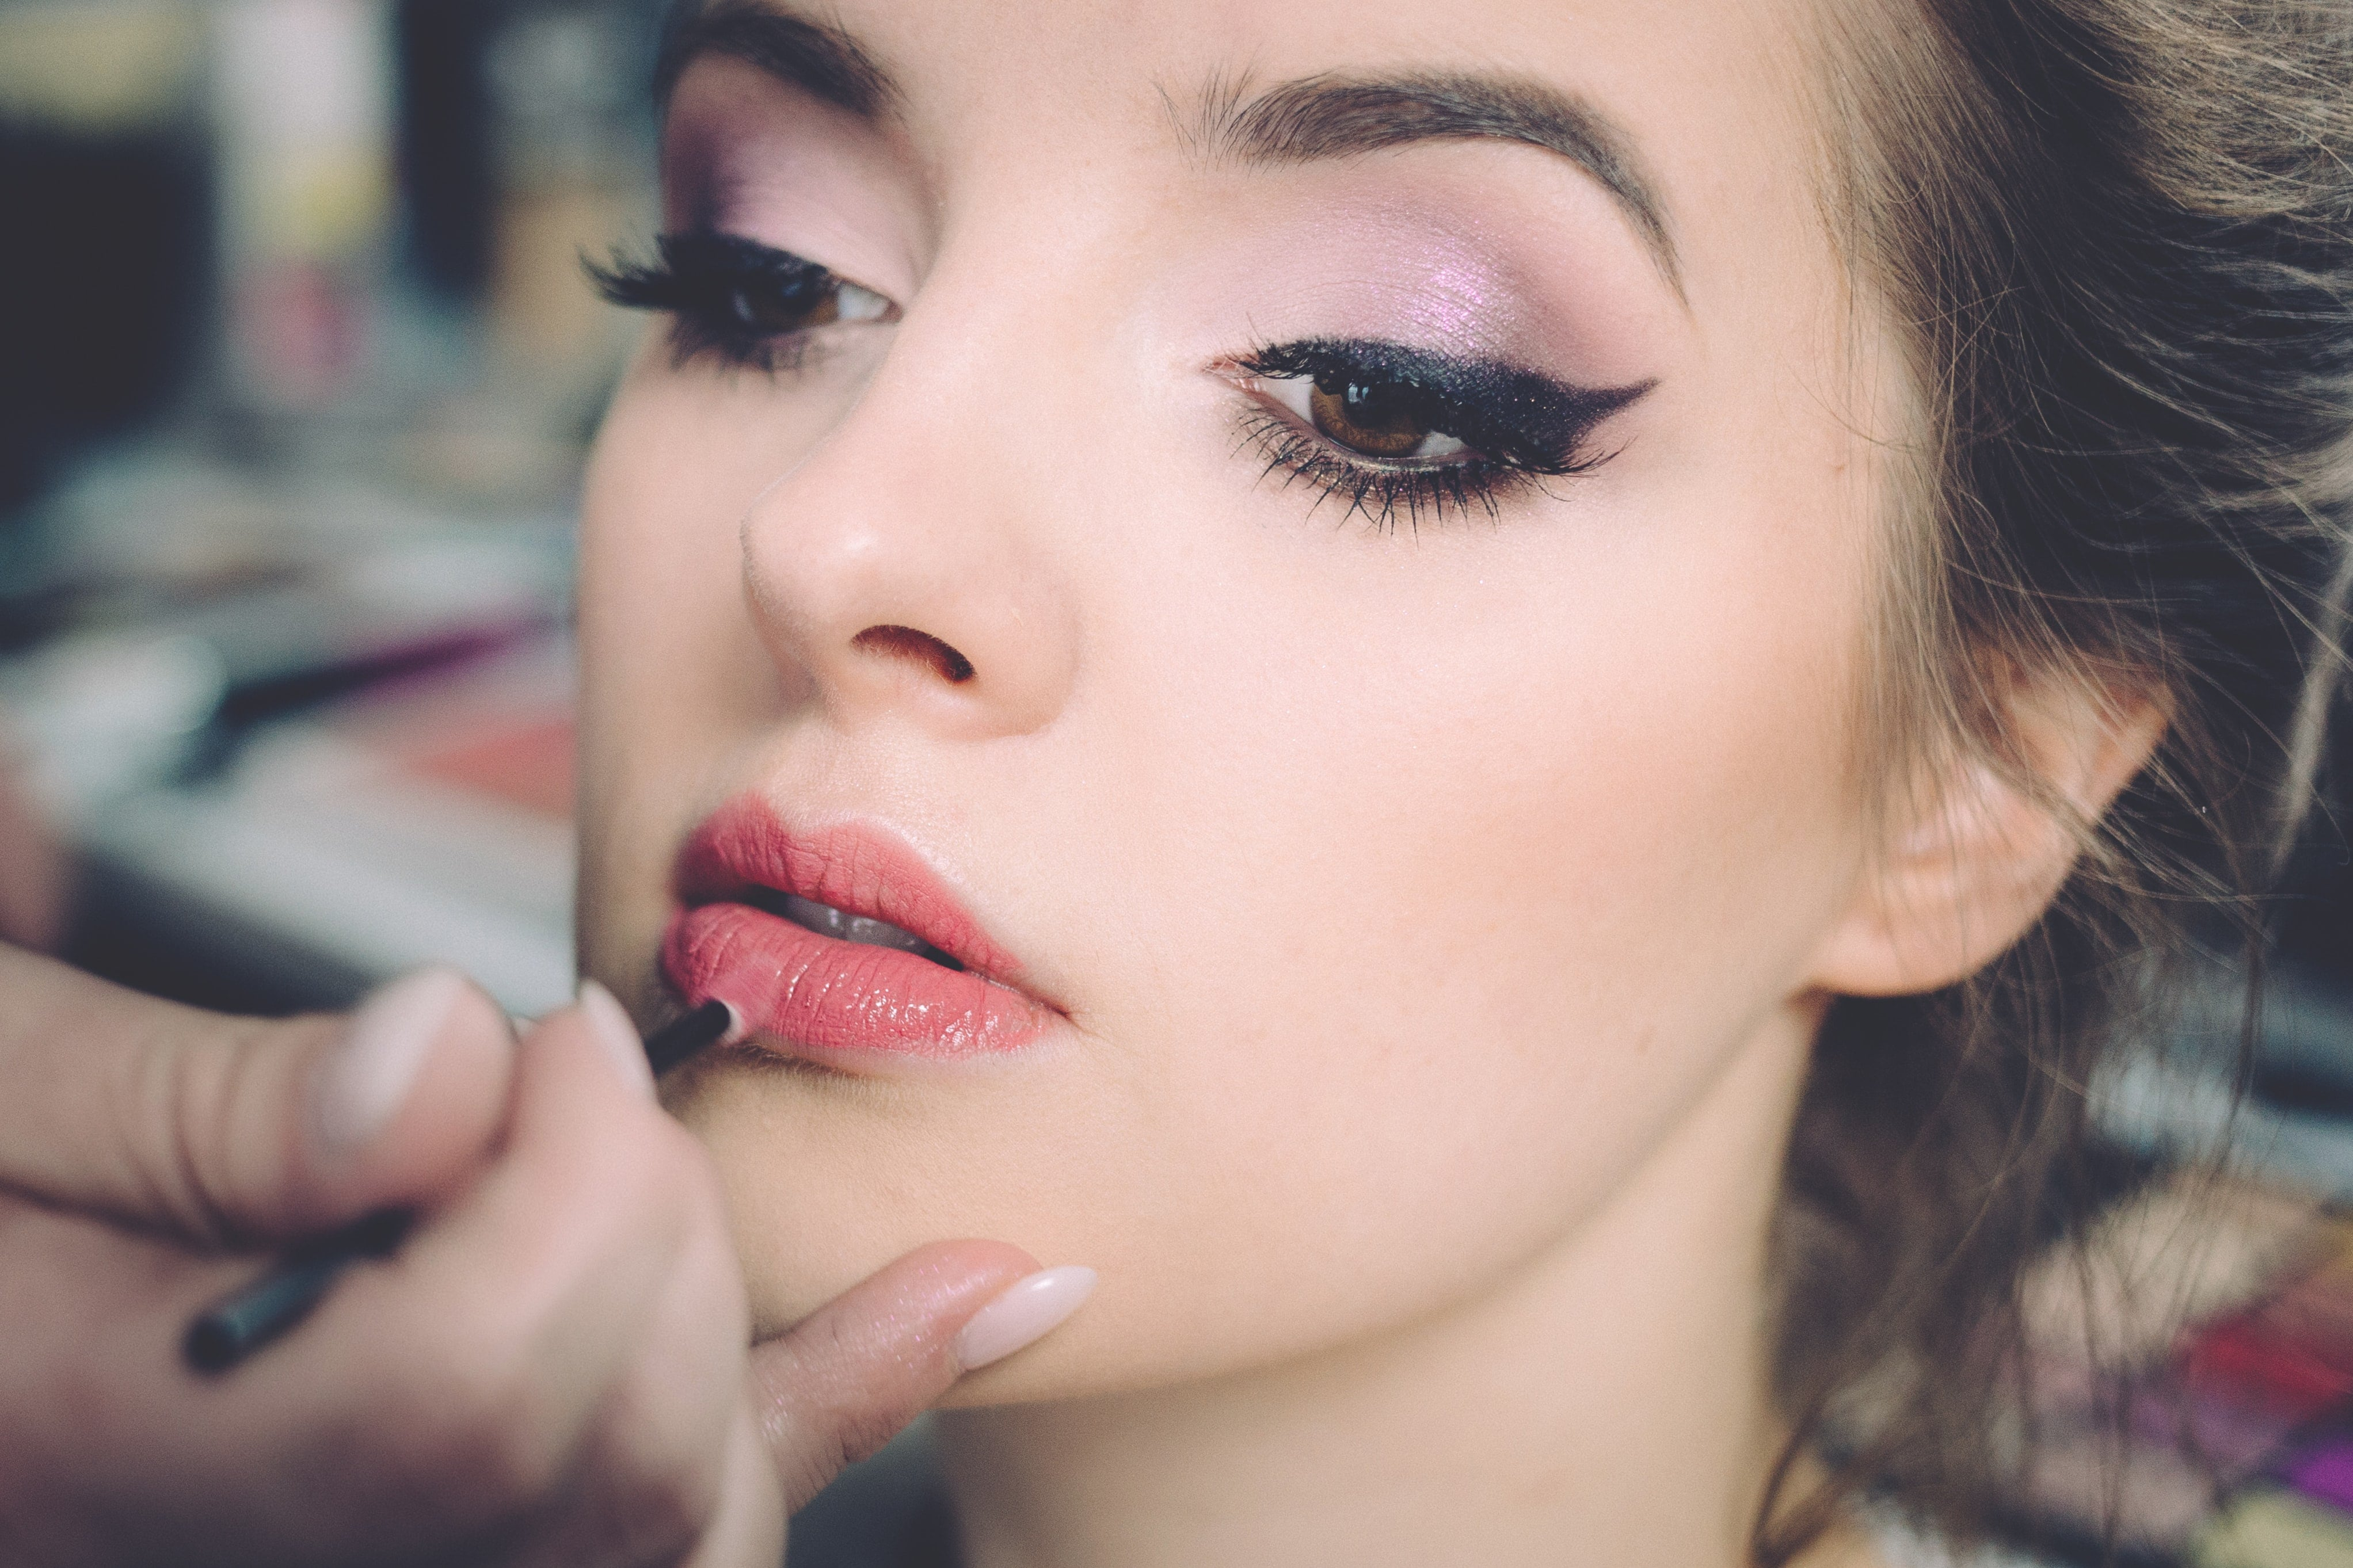 New to the Influencer Digital Marketing in the Beauty Sector? Think of Role Models